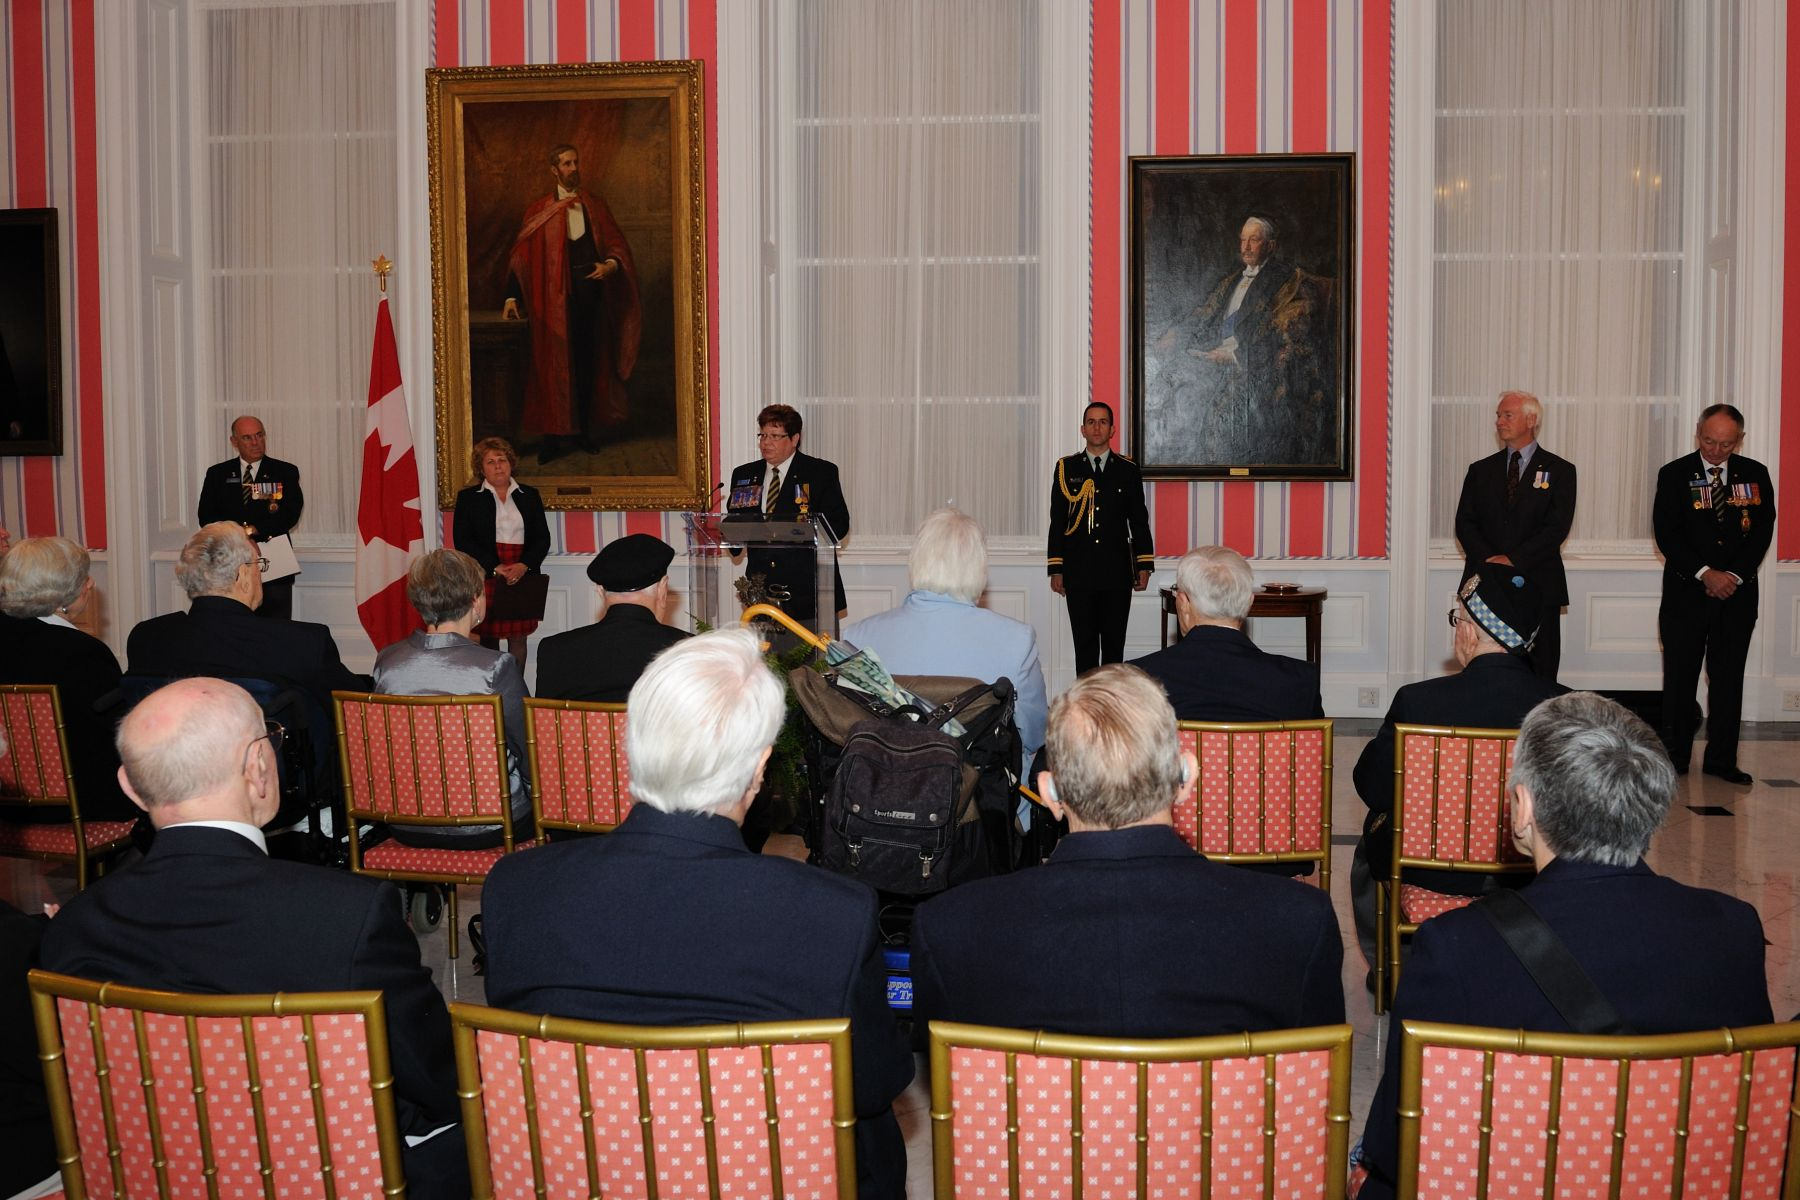 The Dominion President of the Royal Canadian Legion Ms. Patricia Varga delivered a speech on this occasion.